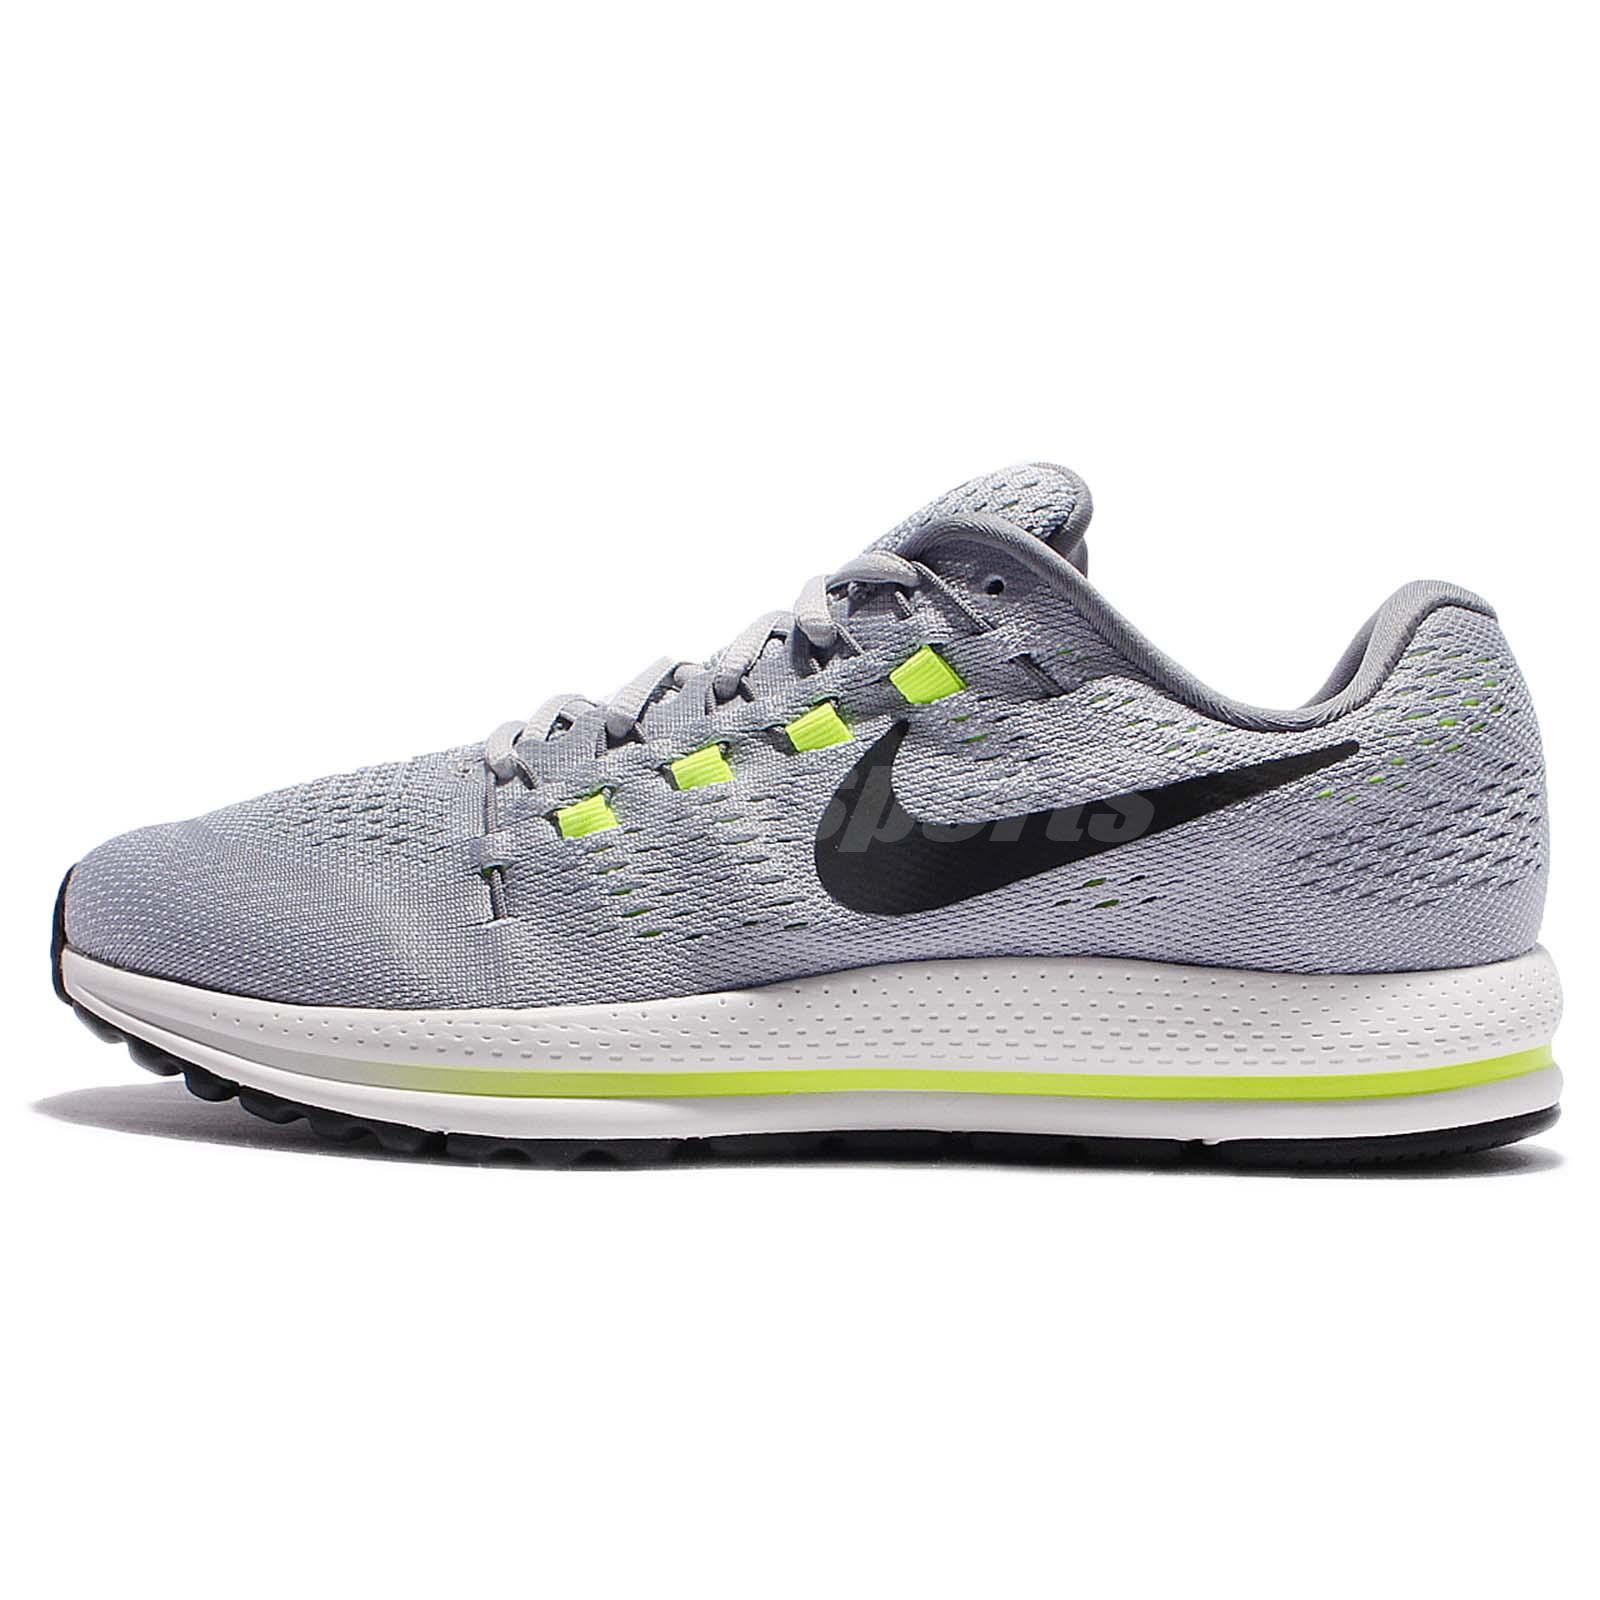 d3a7629cb9c0 Nike Air Zoom Vomero 12 Grey Black Volt Men Running Shoes Sneakers  863762-002